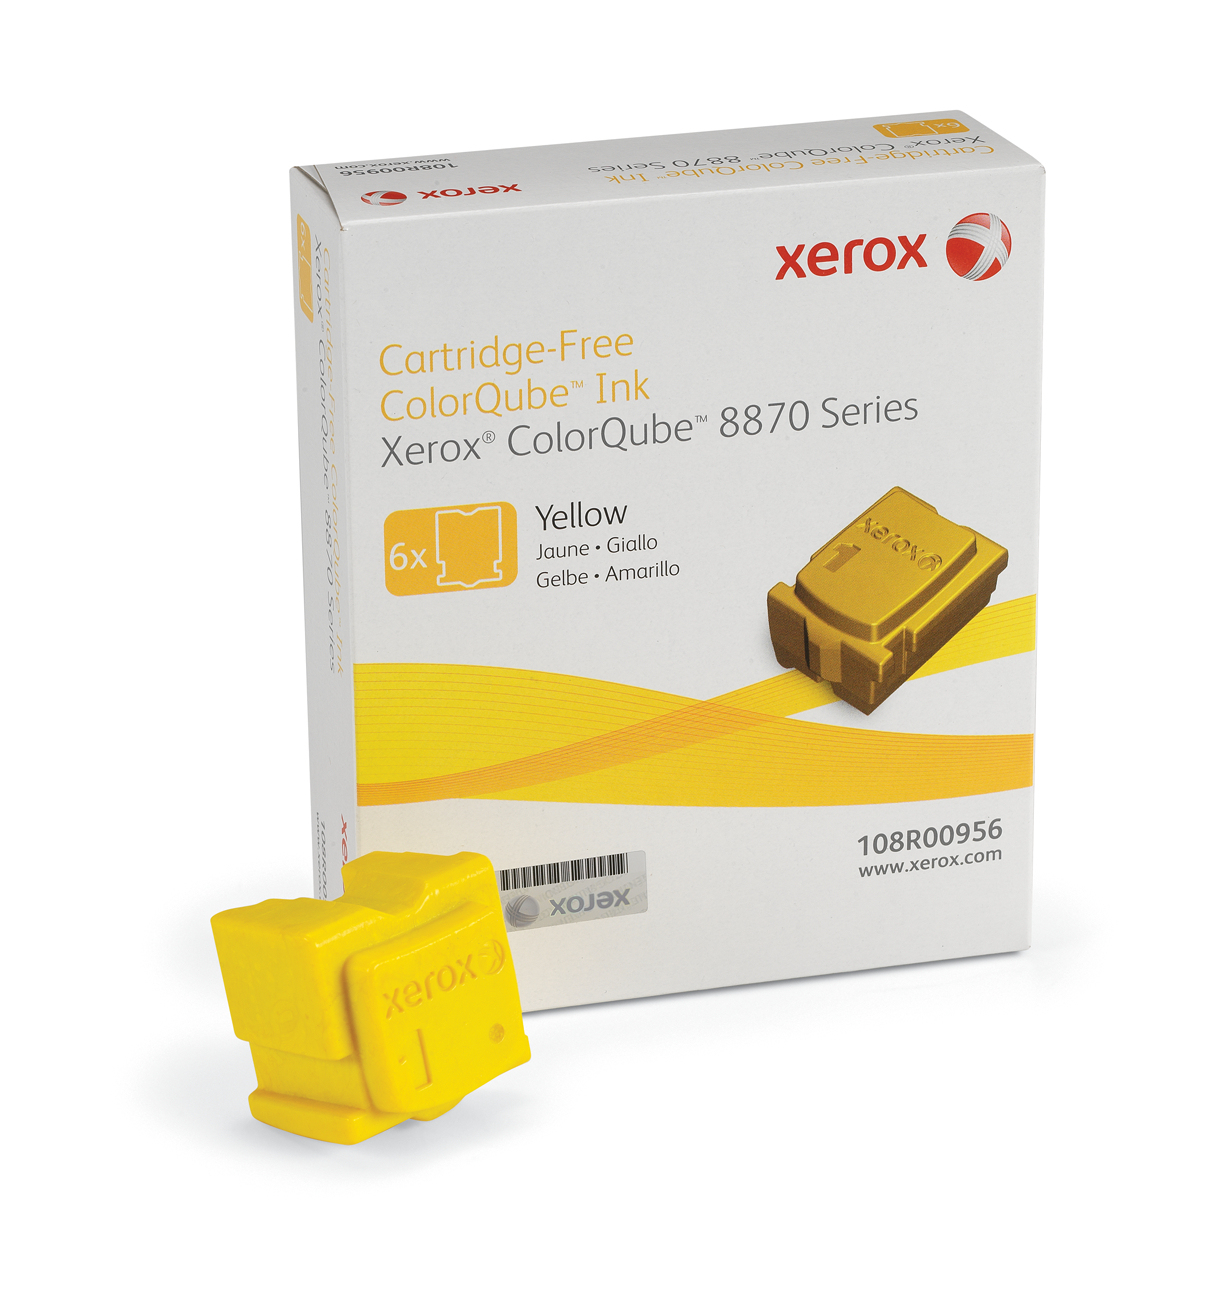 Xer108r00956   Xerox Colorqube 8870 Yellow    6 Sticks,17300 Pages                                         - UF01